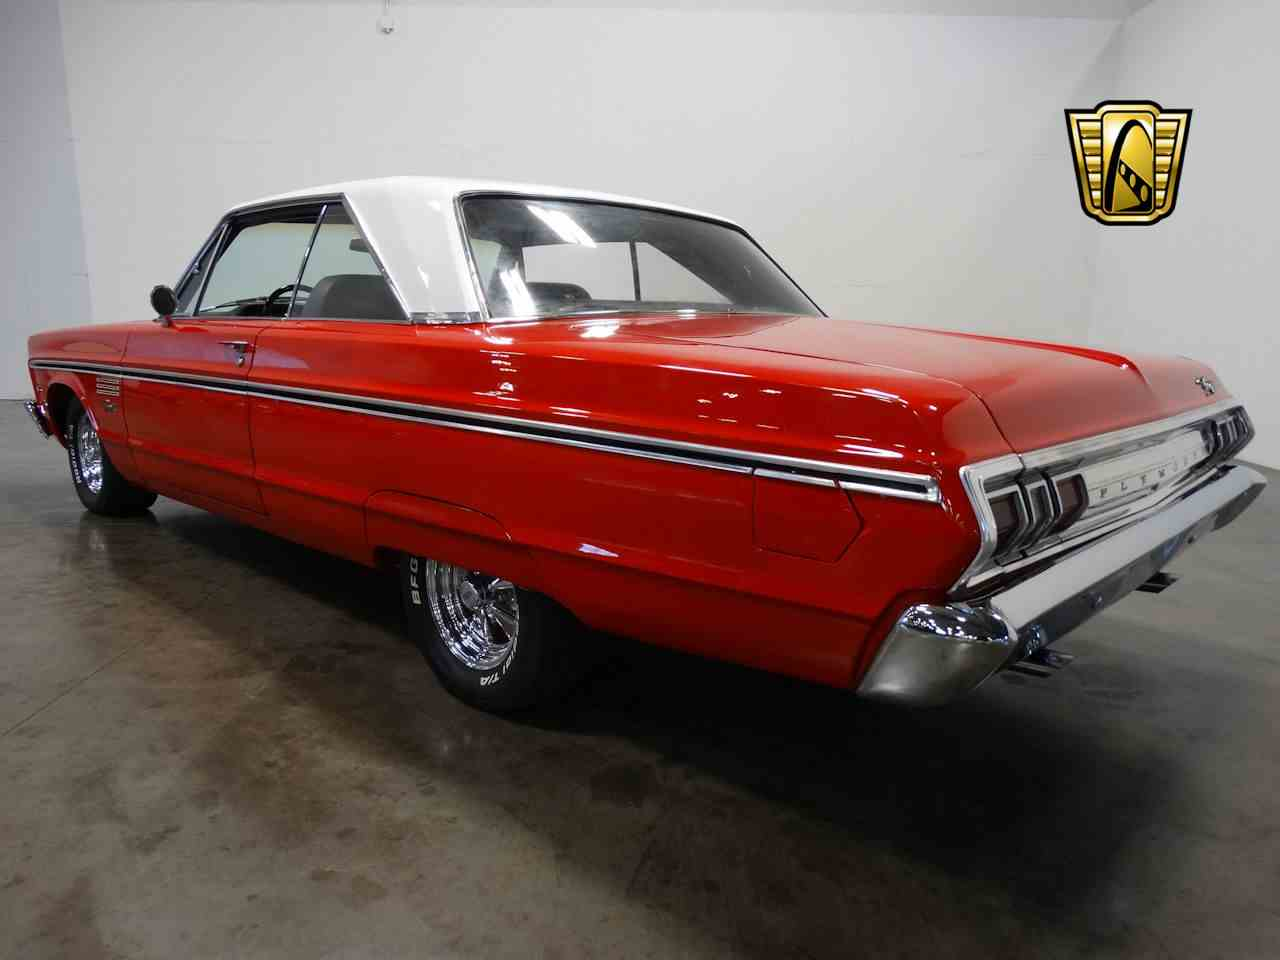 1965 Plymouth Fury for Sale   ClassicCars.com   CC-1013977